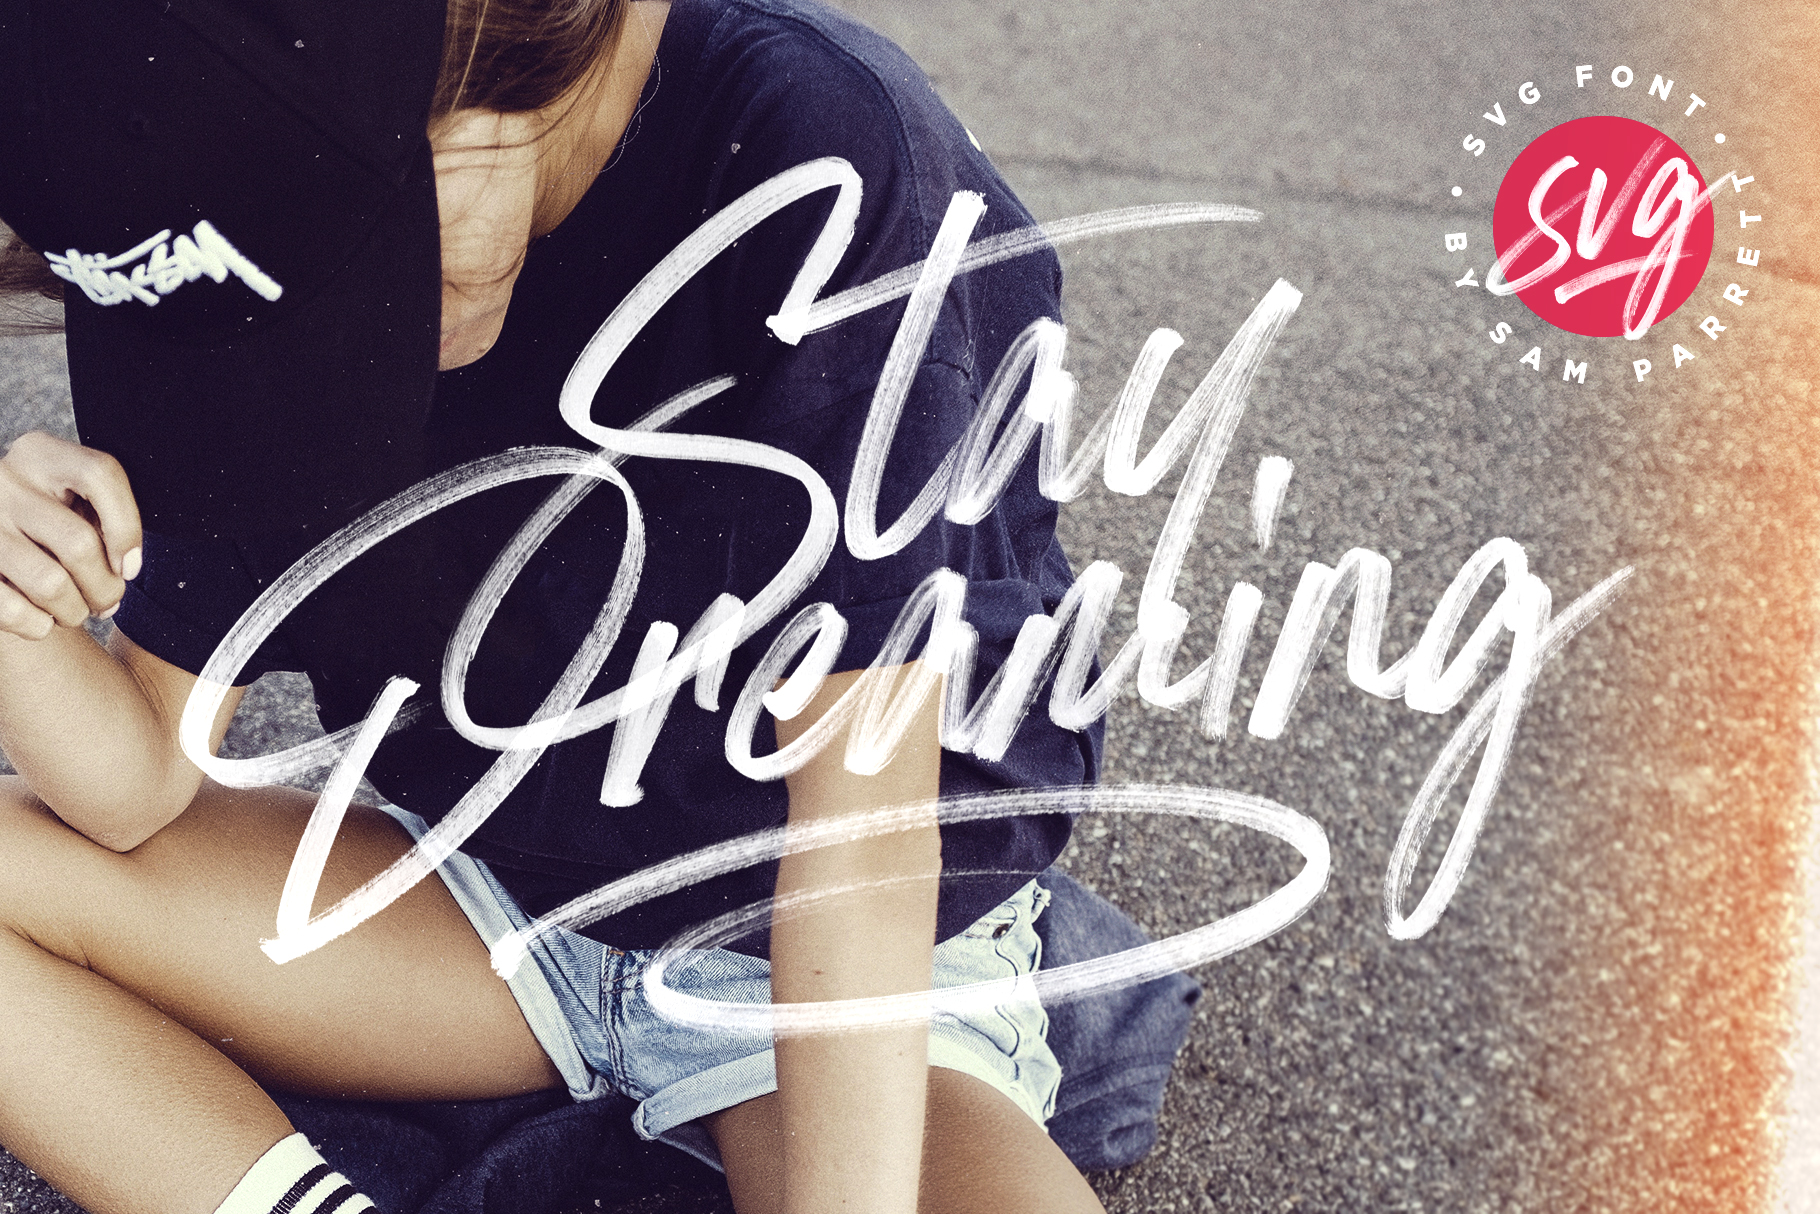 Set Sail Stay Dreaming Font